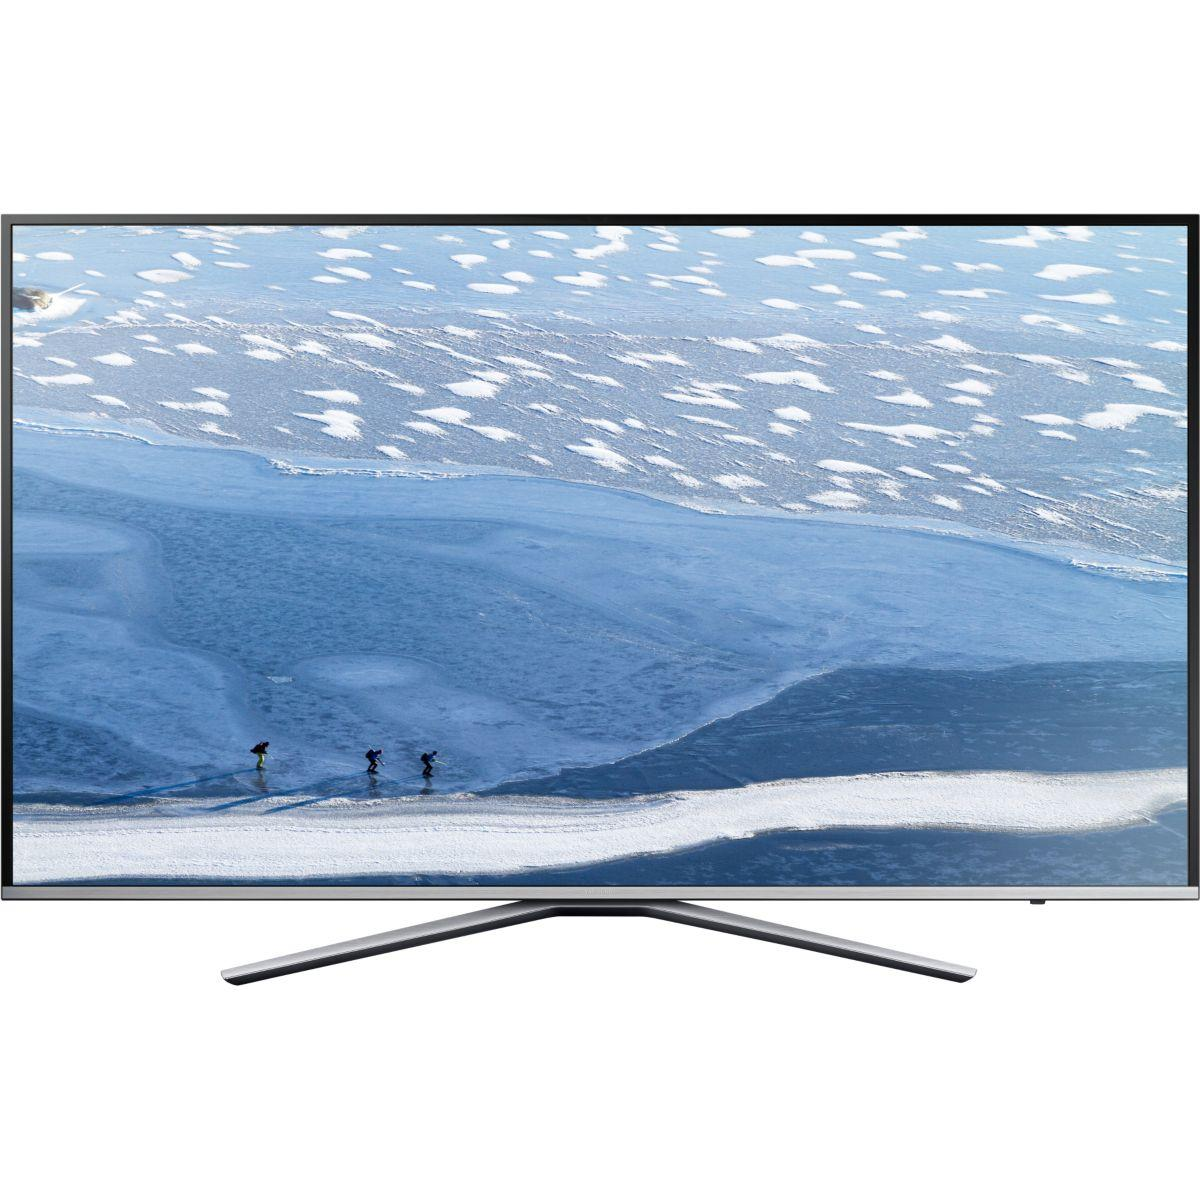 Tv samsung ue55ku6400 4k 1500 pqi smart tv (photo)